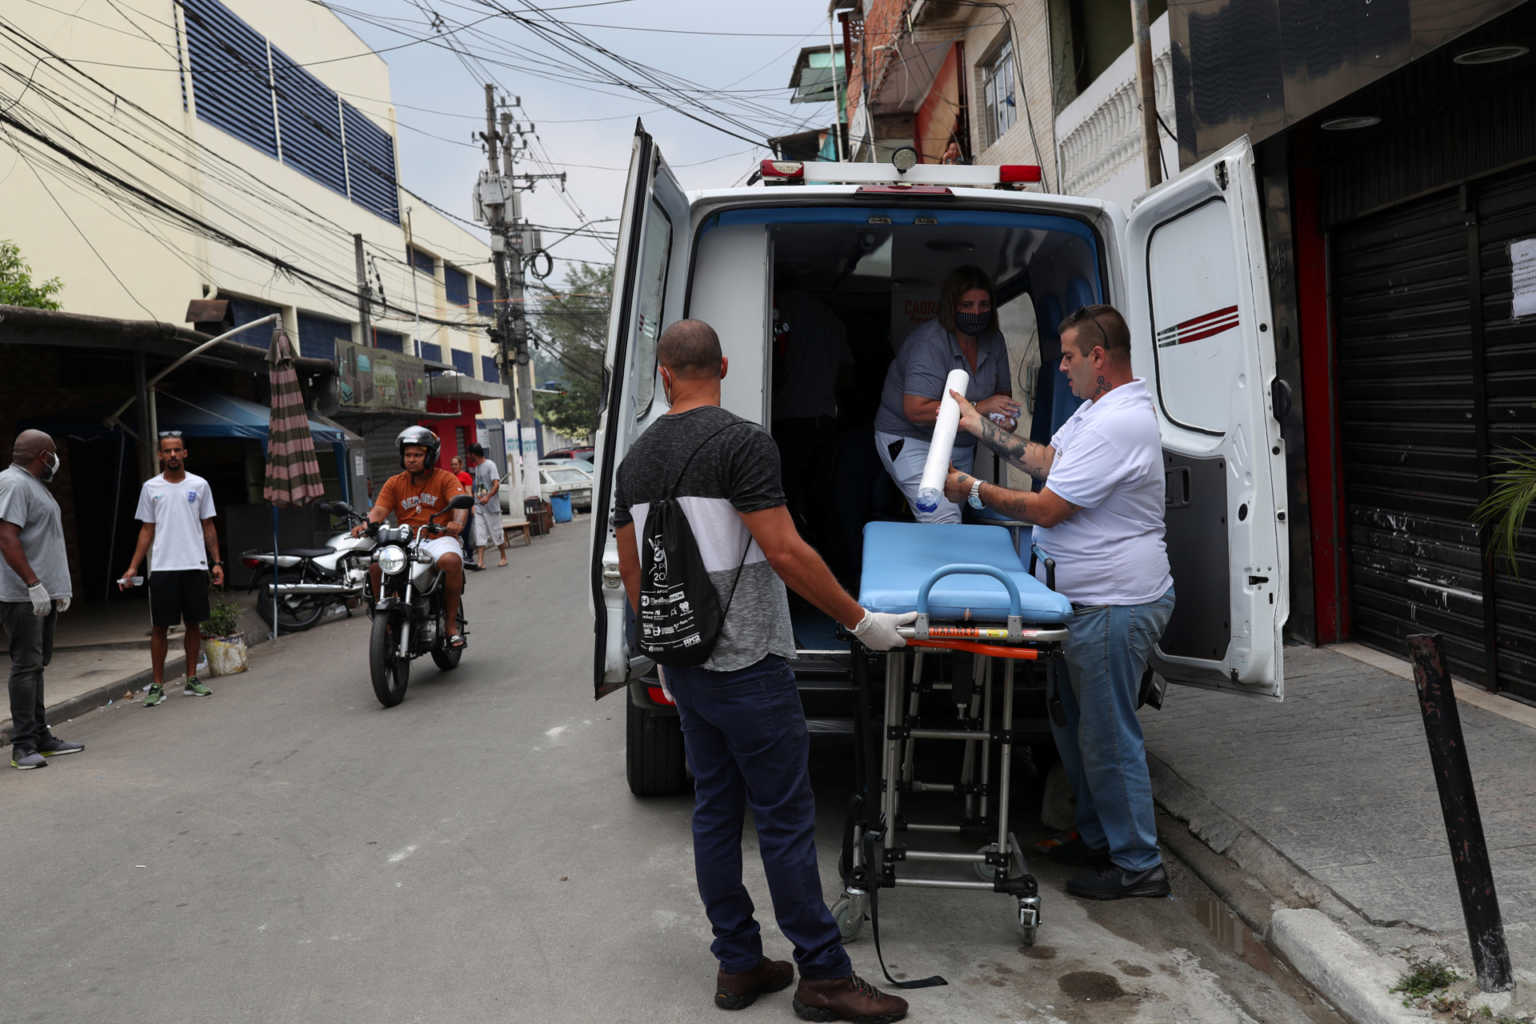 Medical personnel prepare an ambulance after residents of the city's biggest slum Paraisopolis have hired a round-the-clock private medical service to fight the coronavirus disease (COVID-19), in Sao Paulo, Brazil March 29, 2020. Picture taken March 29, 2020. REUTERS/Amanda Perobelli